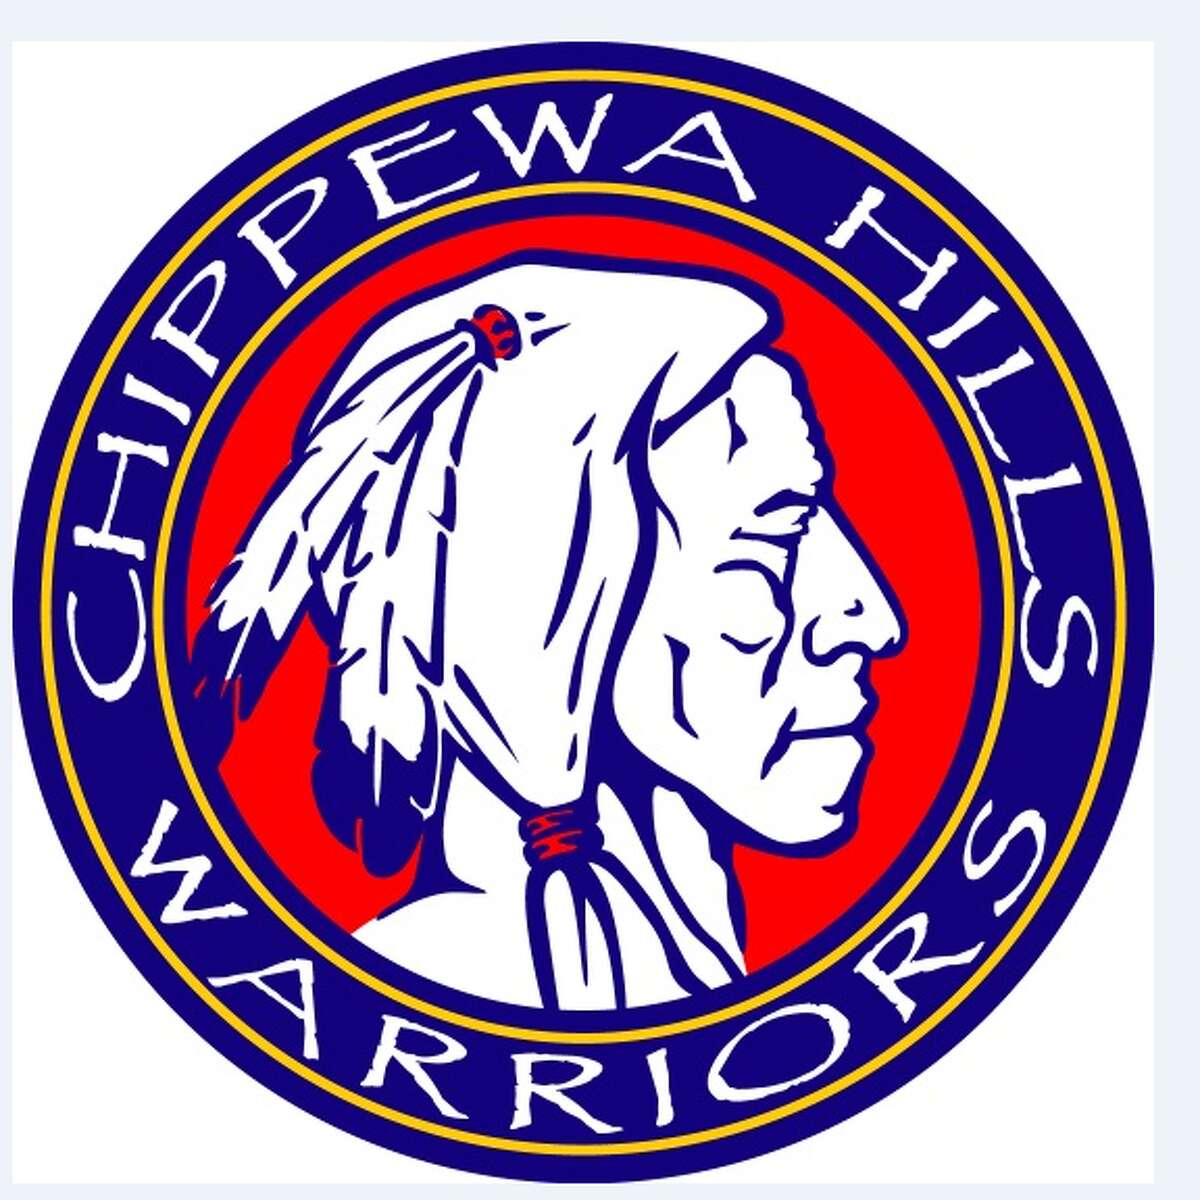 Chippewa Hills School District is continuing its plans to replace the district's logo depicting Native American imagery.